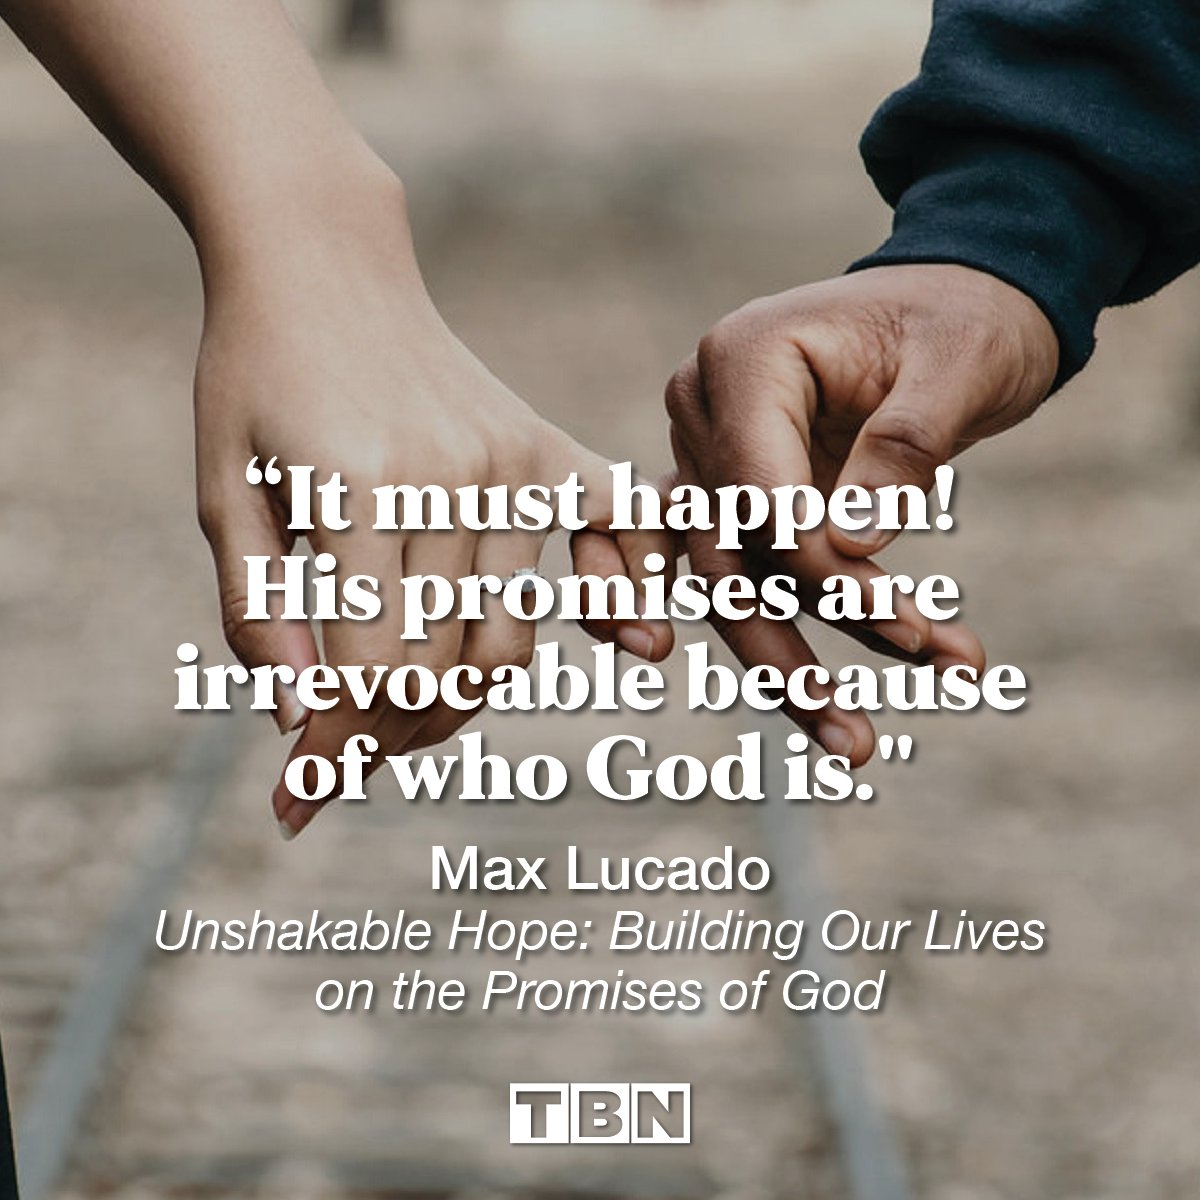 """""""It must happen! His promises are irrevocable because of who God is."""" -Max Lucado, Unshakable Hope: Building Our Lives on the Promises of God  #QOTD #quoteoftheday https://t.co/zBFWwwf2q3"""